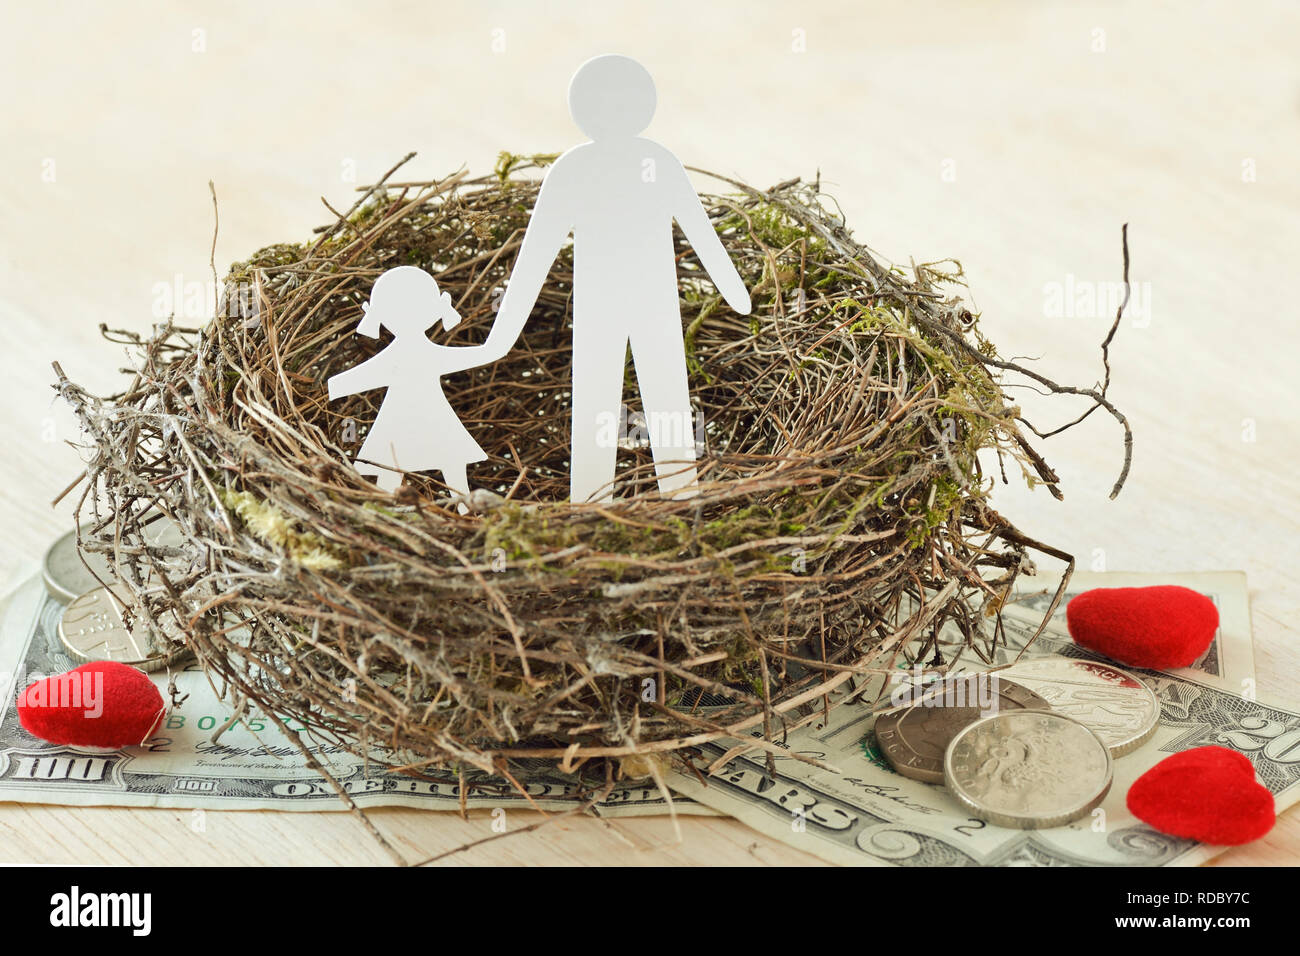 Paper father and daughter in nest on money and hearts - Concept of single parent family - Stock Image